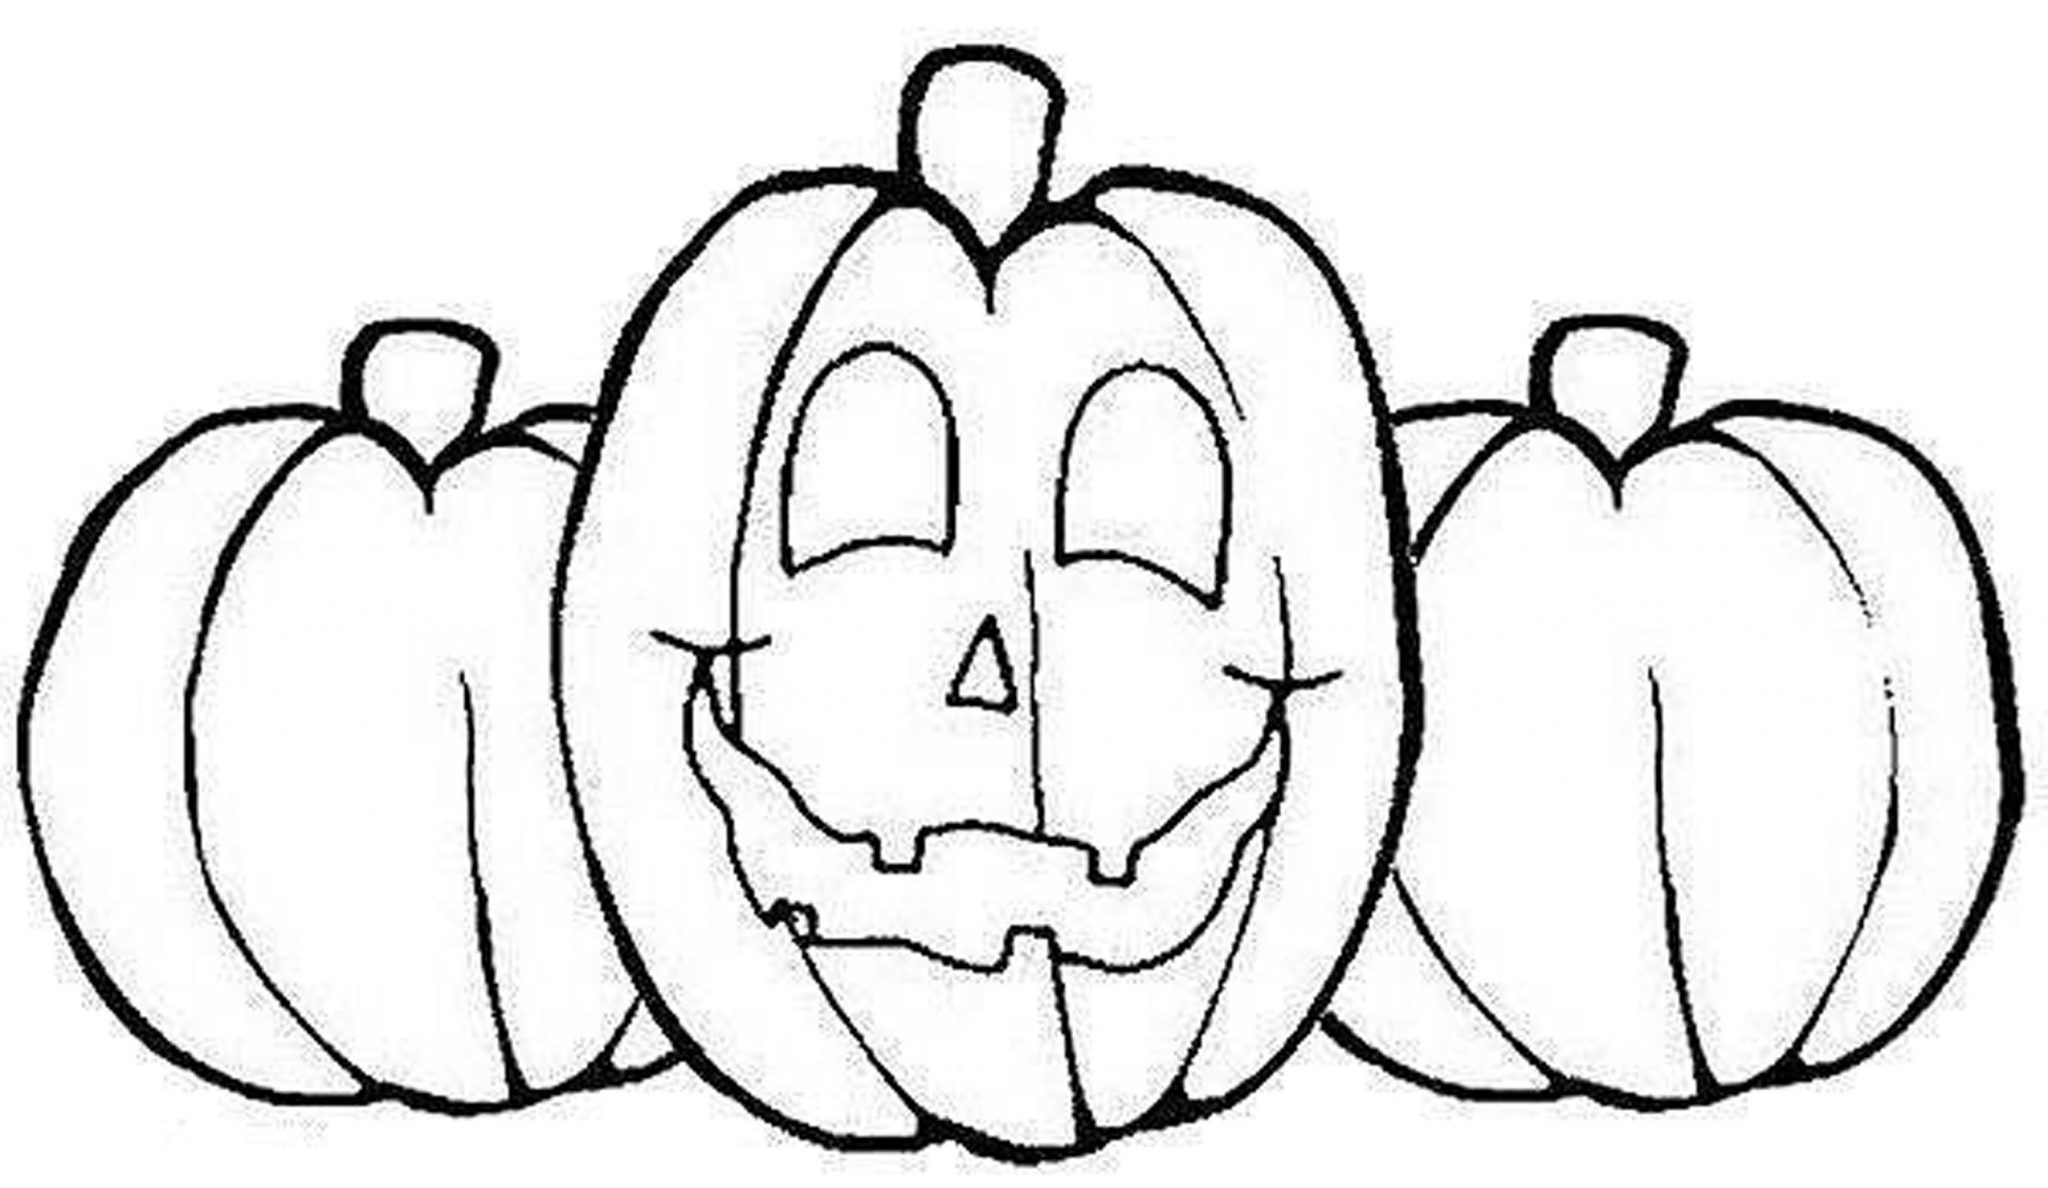 coloring page of a pumpkin print download pumpkin coloring pages and benefits of coloring pumpkin a of page